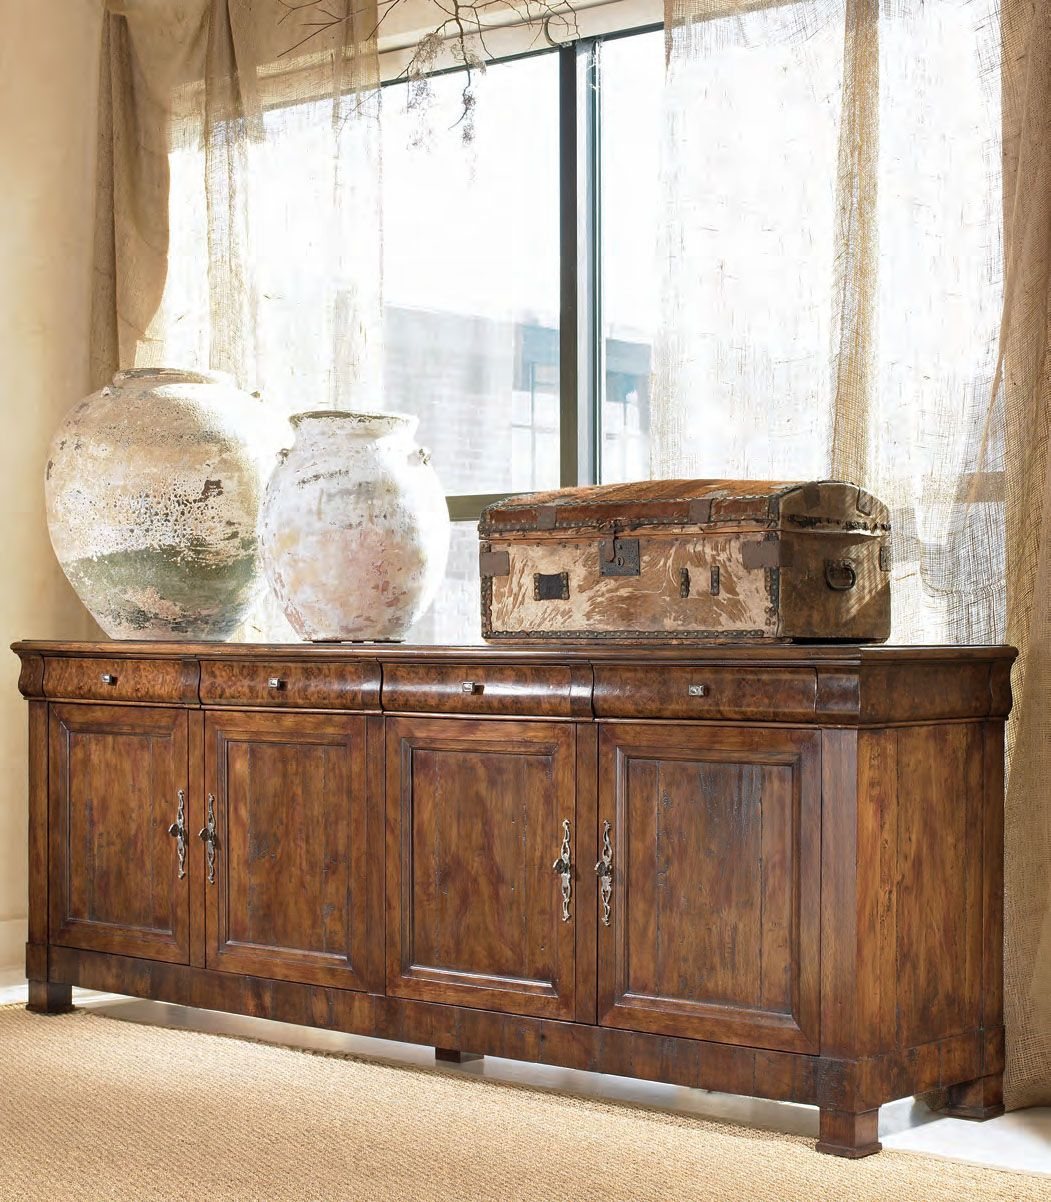 Chateau Lyon Collection for Century Furniture homedecor